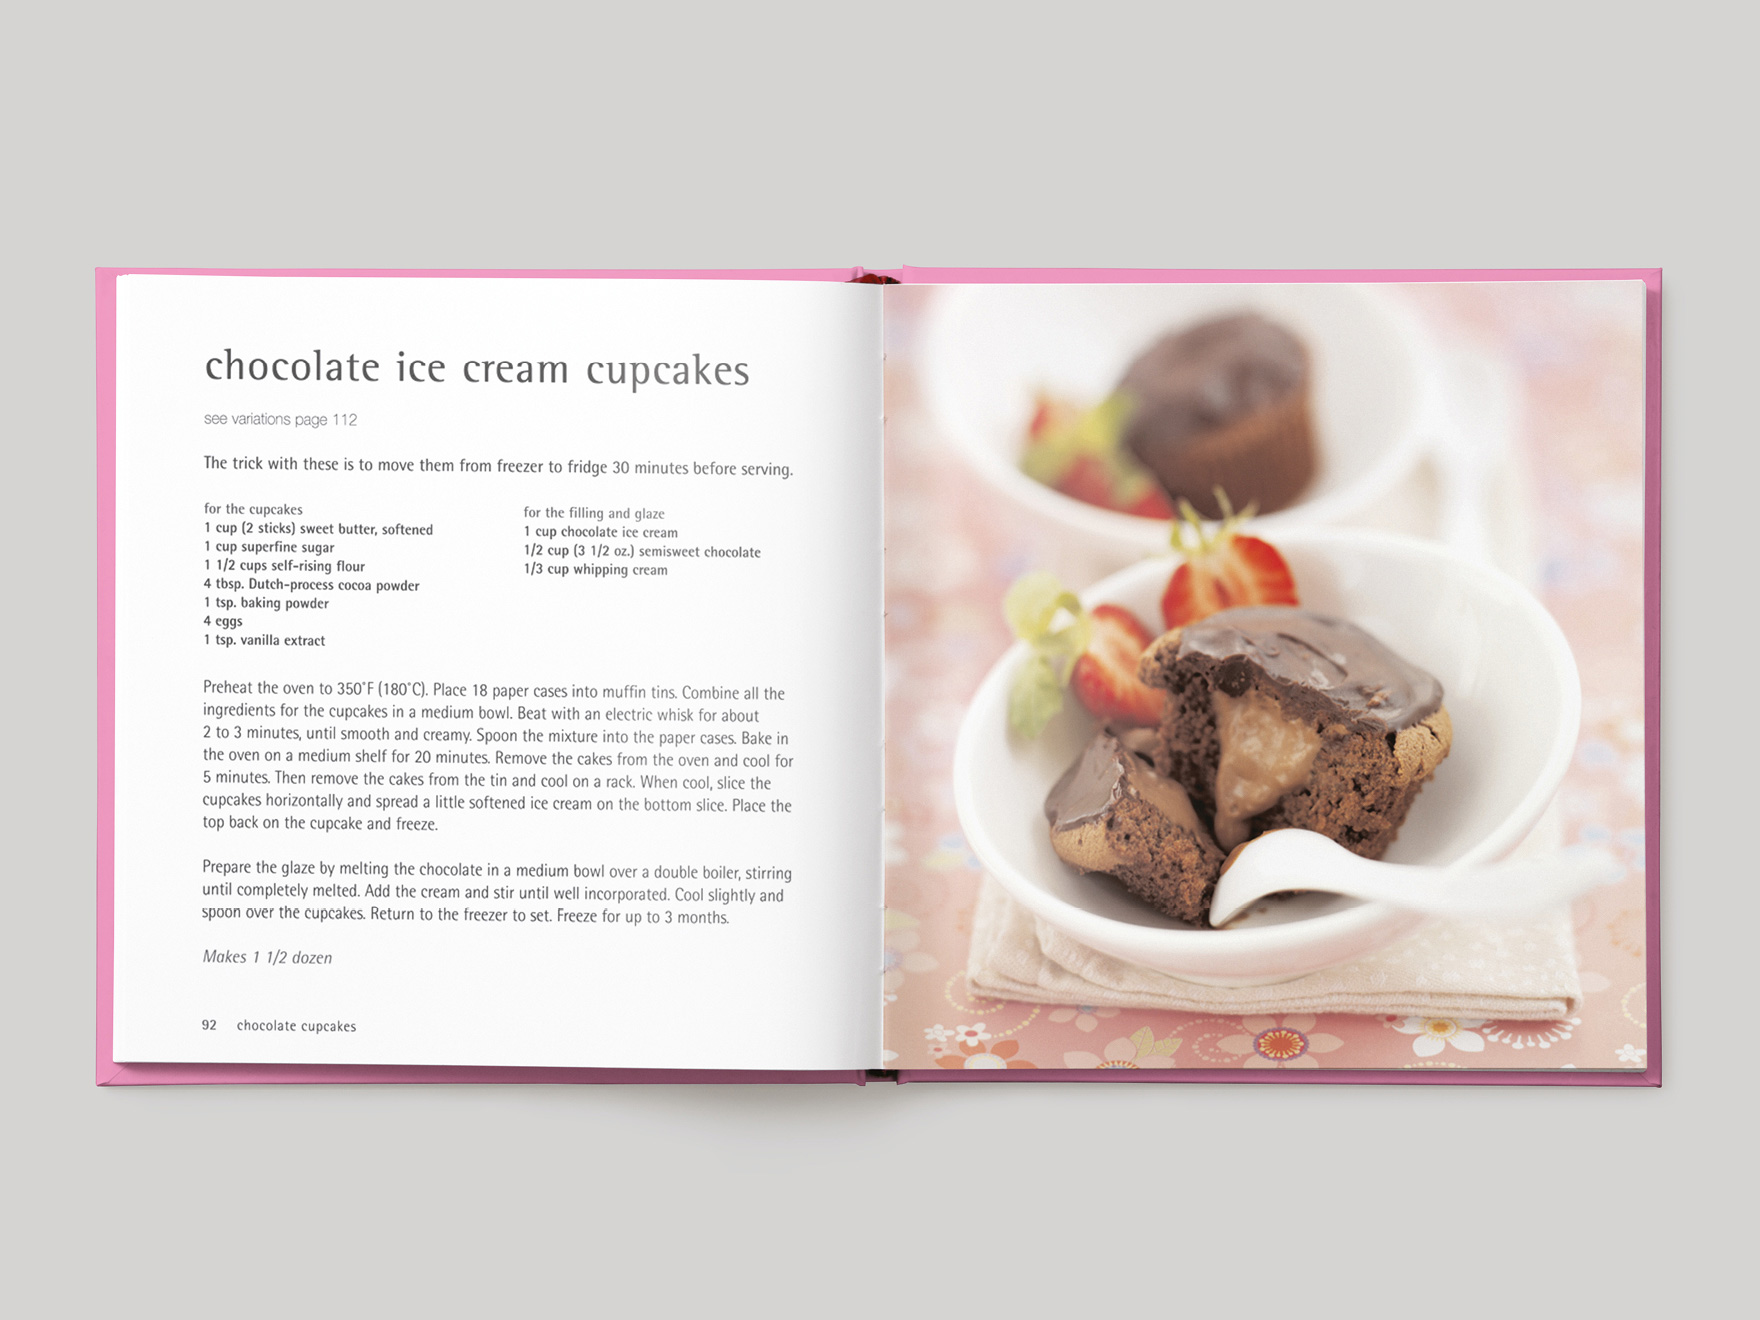 Inside pages from 500 Cupcakes showing a recipe for chocolate ice cream cupcakes